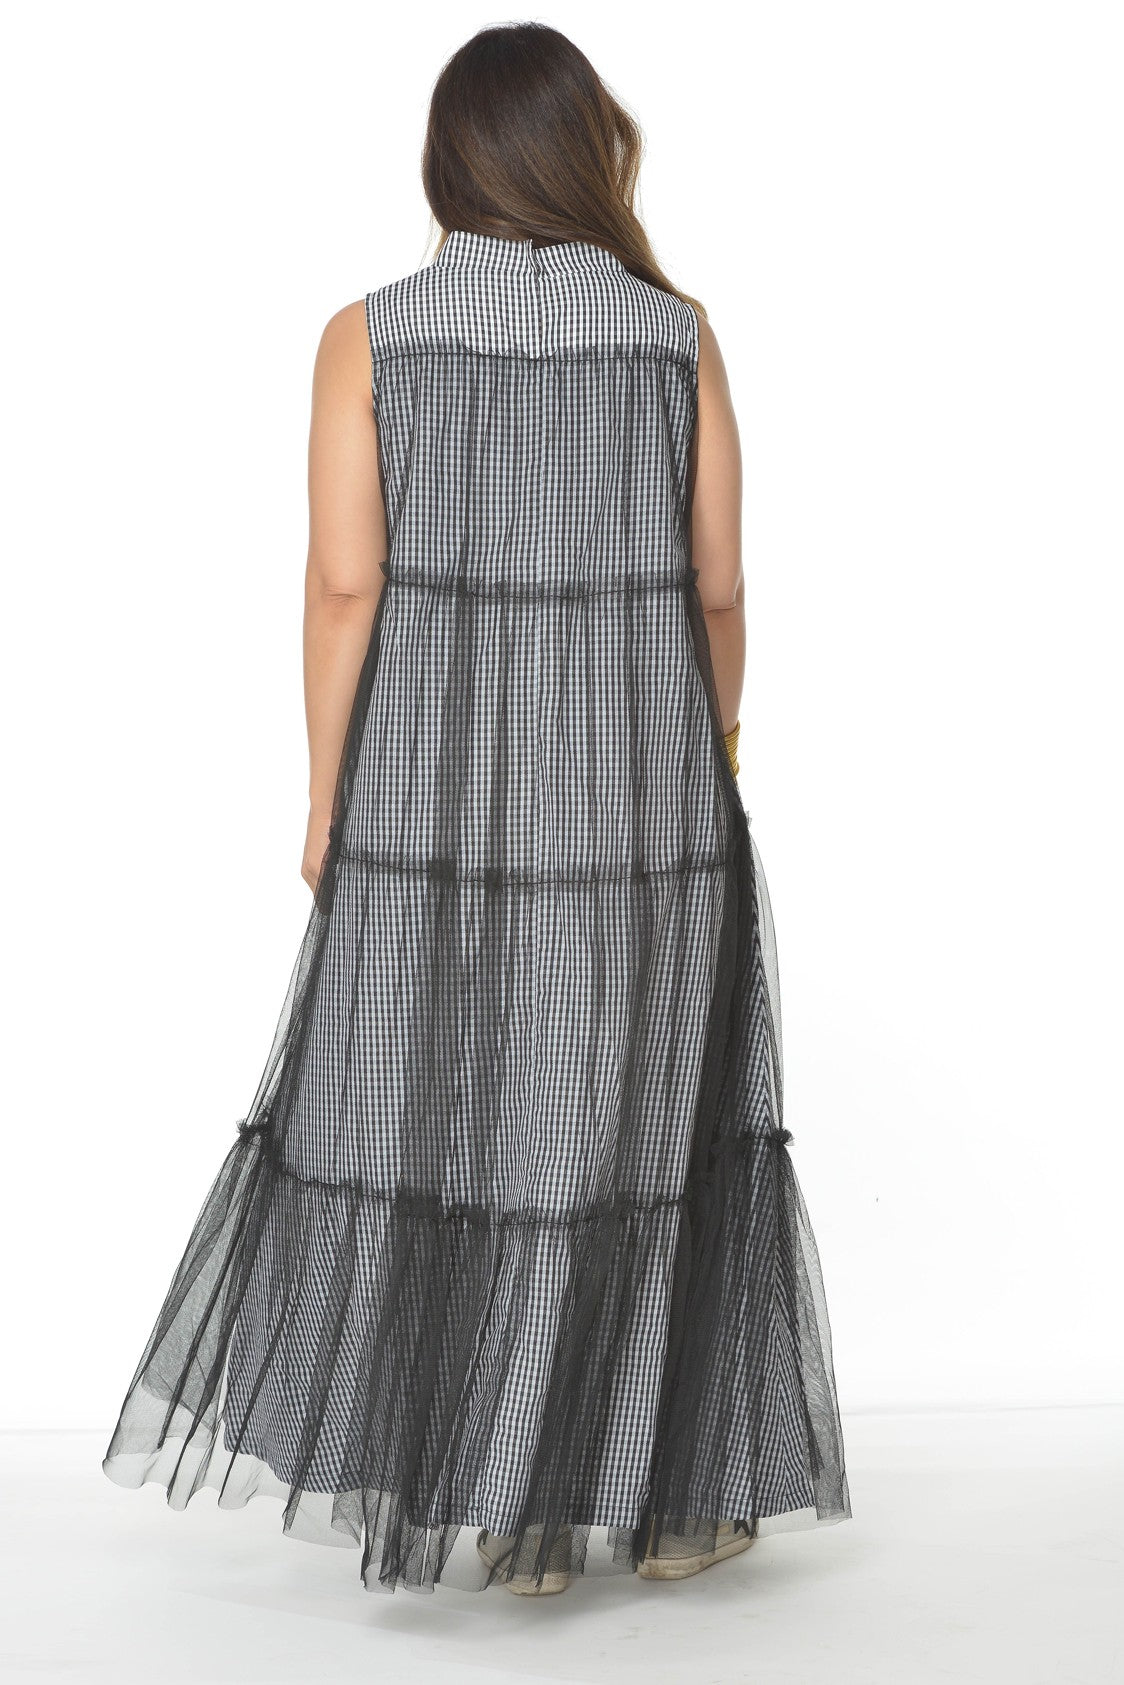 Tulle X Checkered